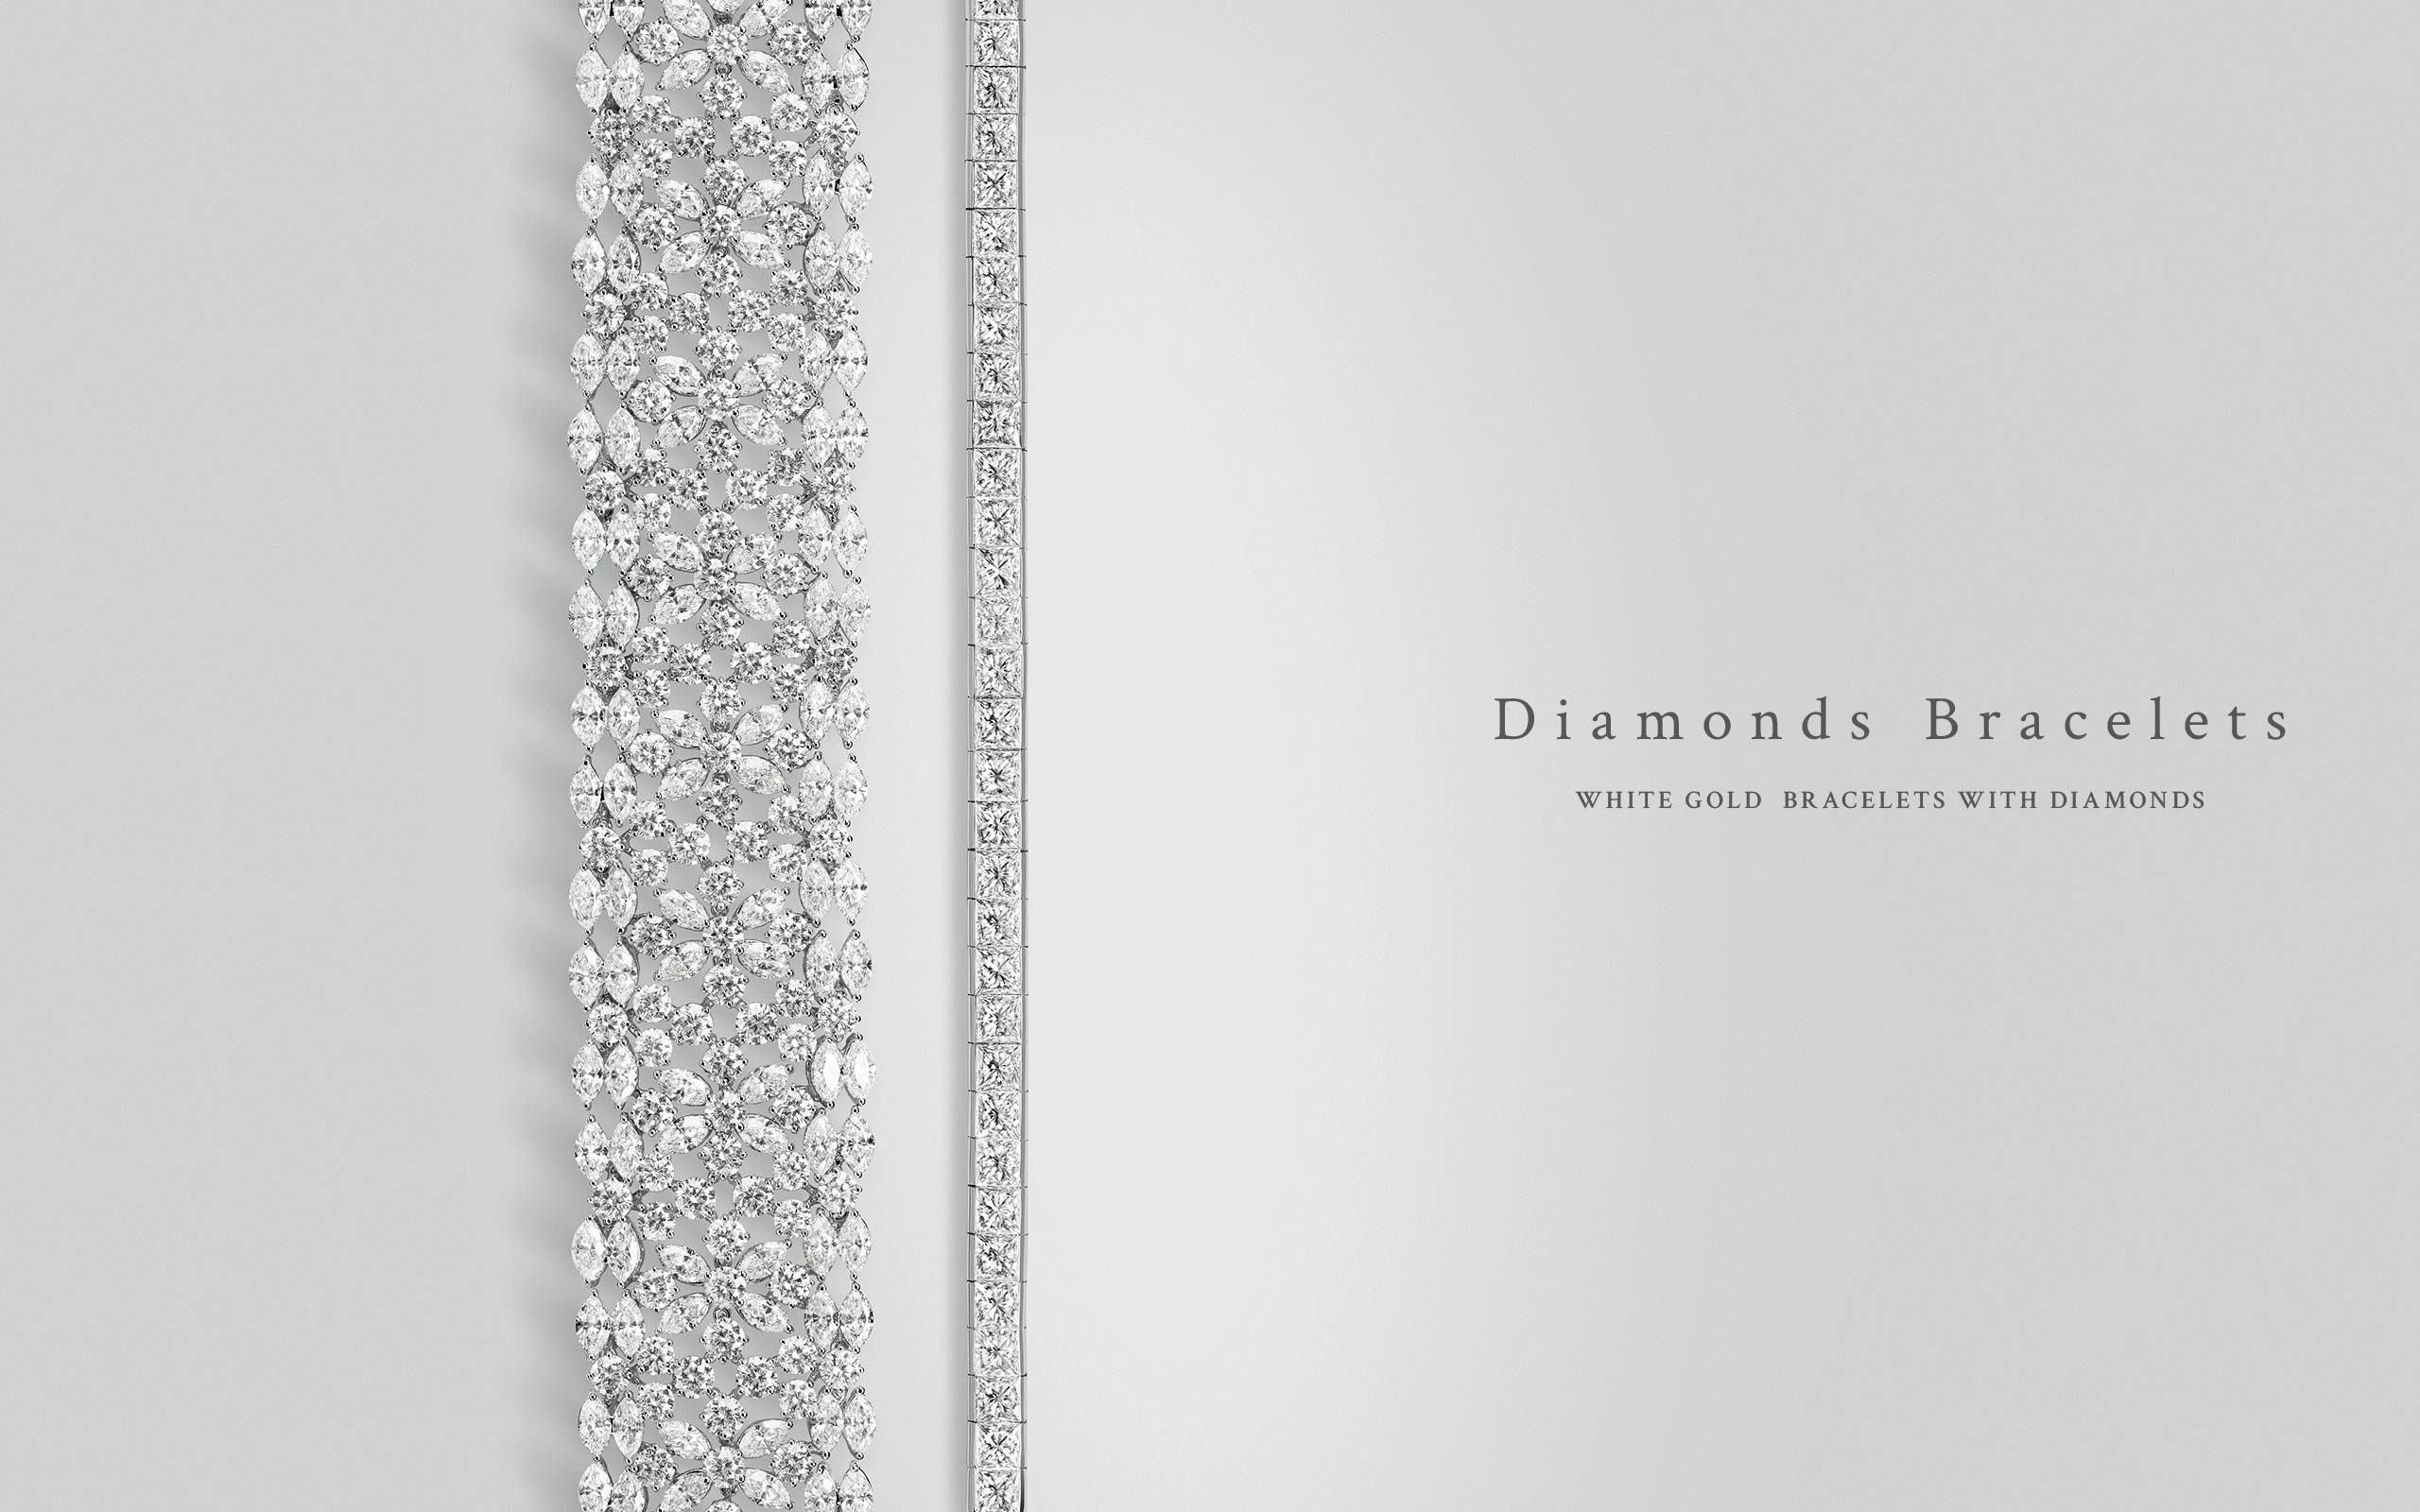 Diamonds Bracelets 04 | Maria Gaspari